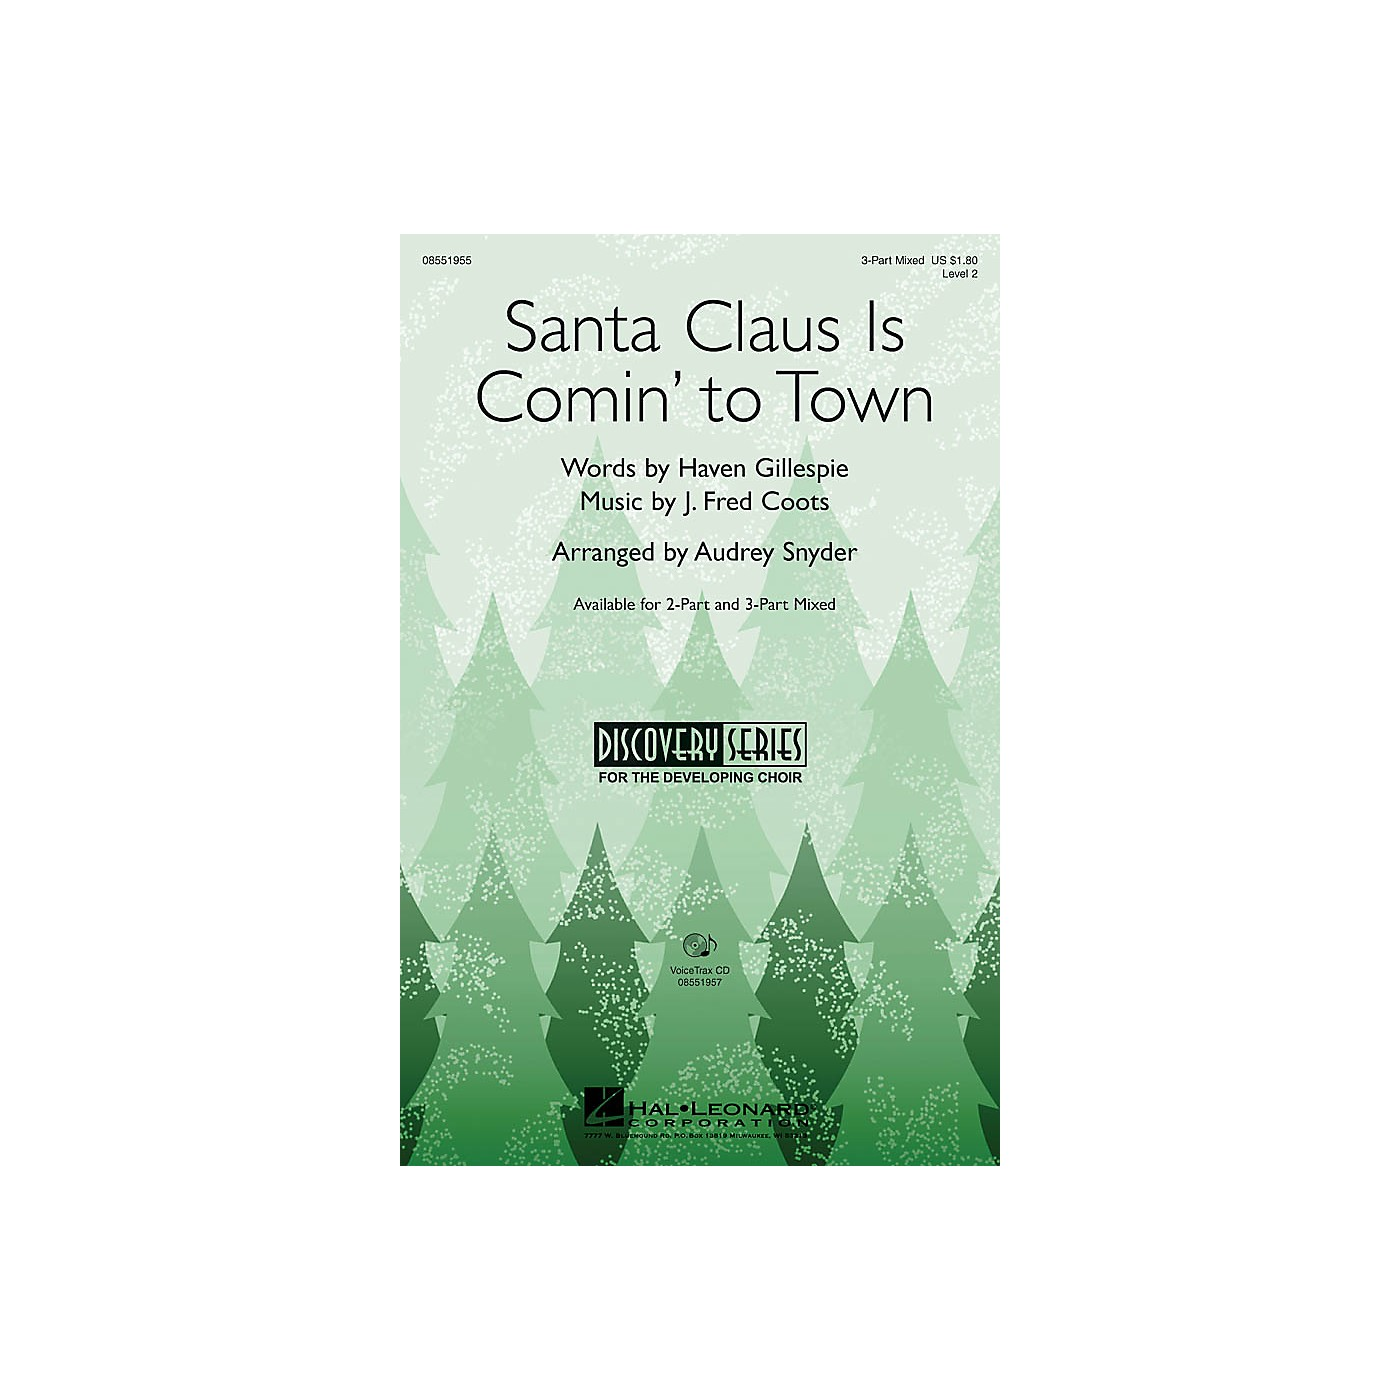 Hal Leonard Santa Claus Is Comin' to Town 3-Part Mixed arranged by Audrey Snyder thumbnail